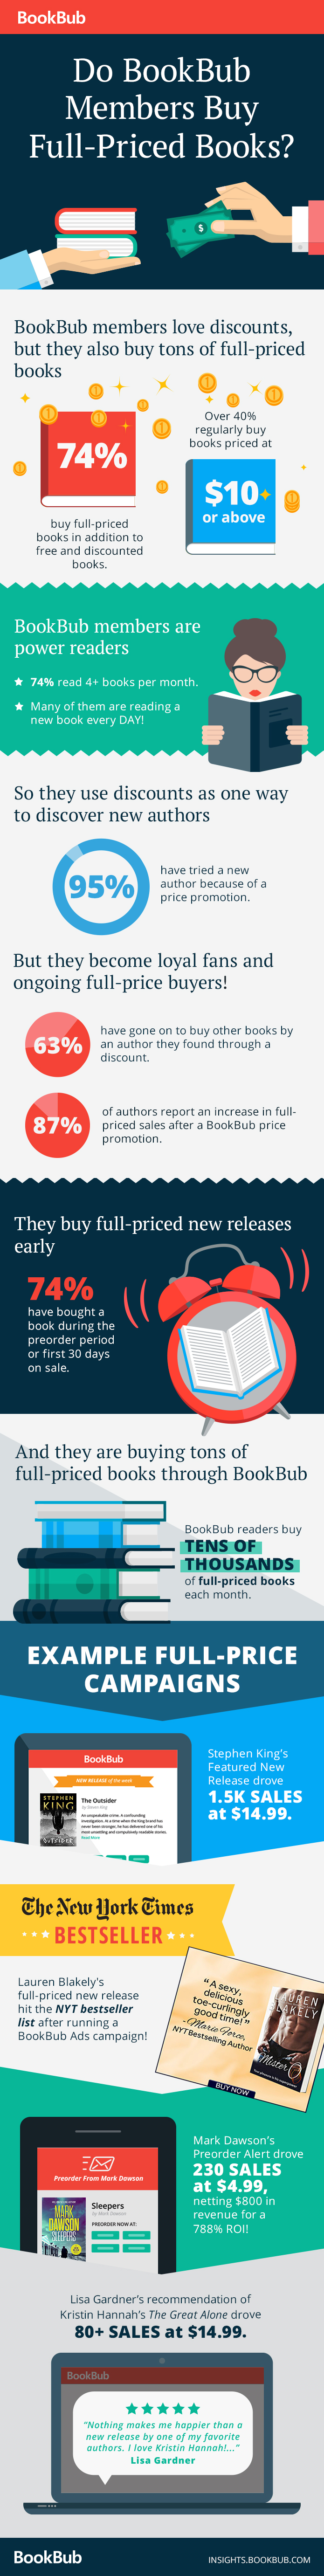 Do BookBub Members Buy Full-Priced Books?